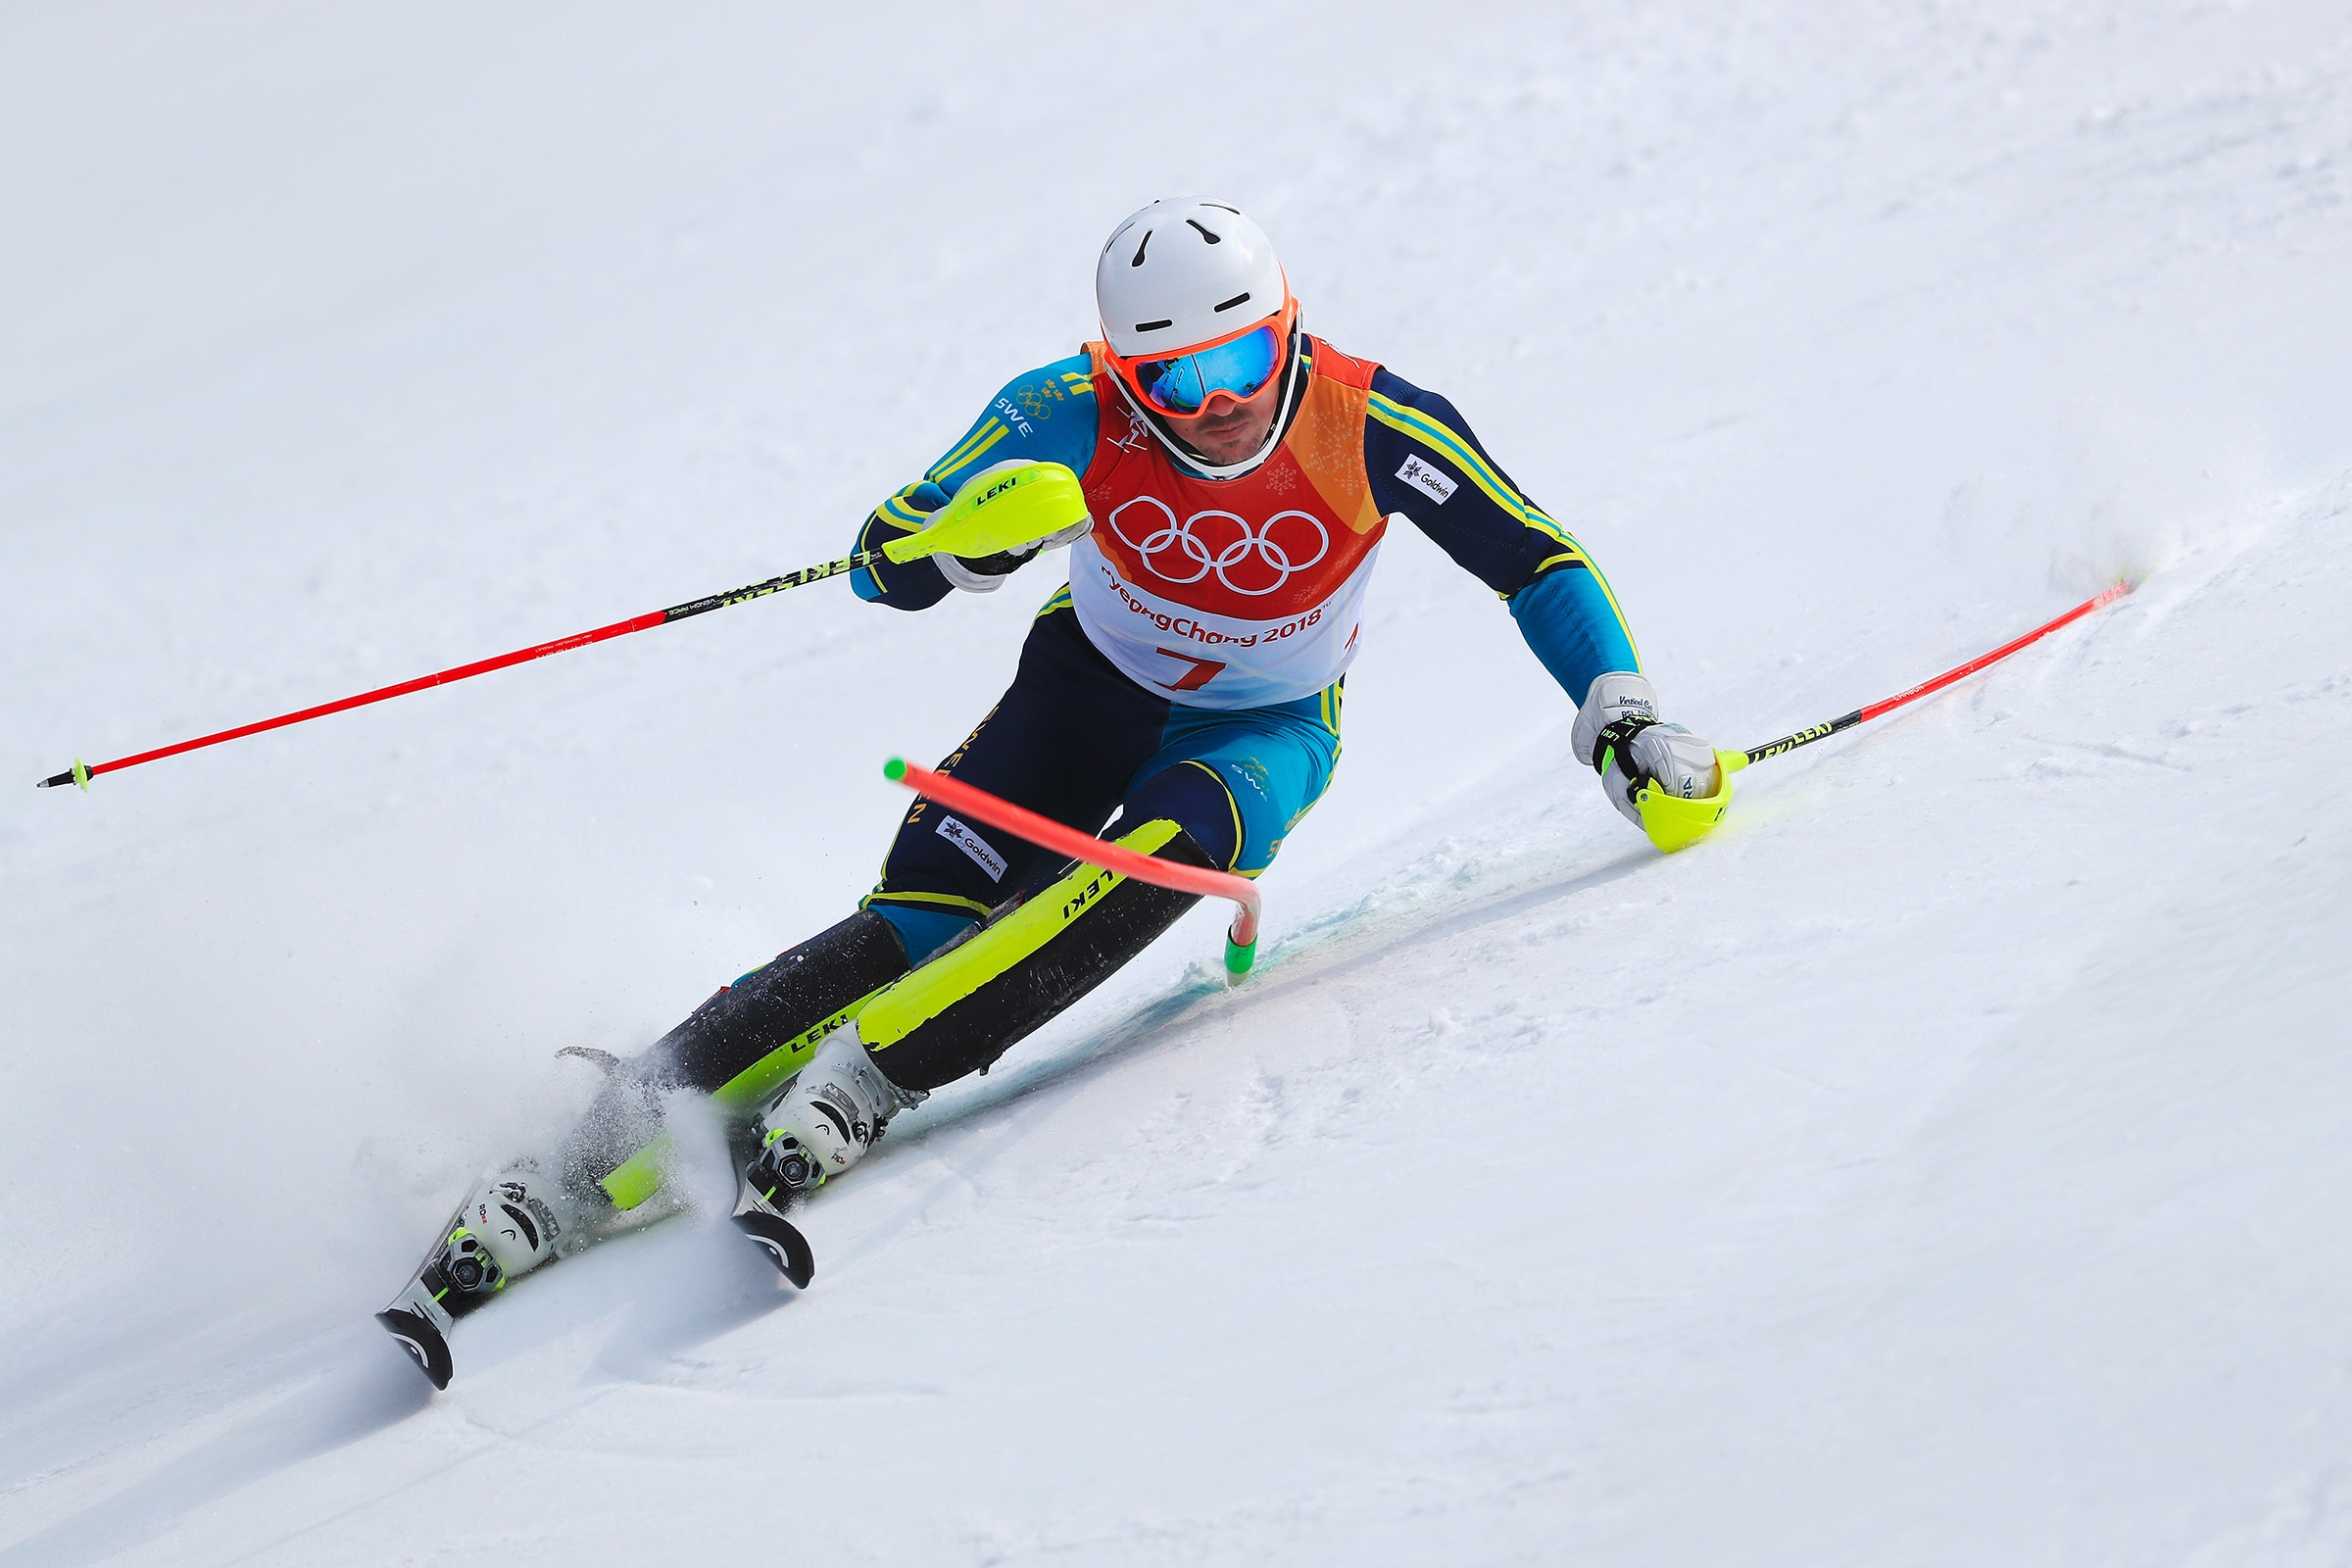 Alpine Skiing - Men's Slalom